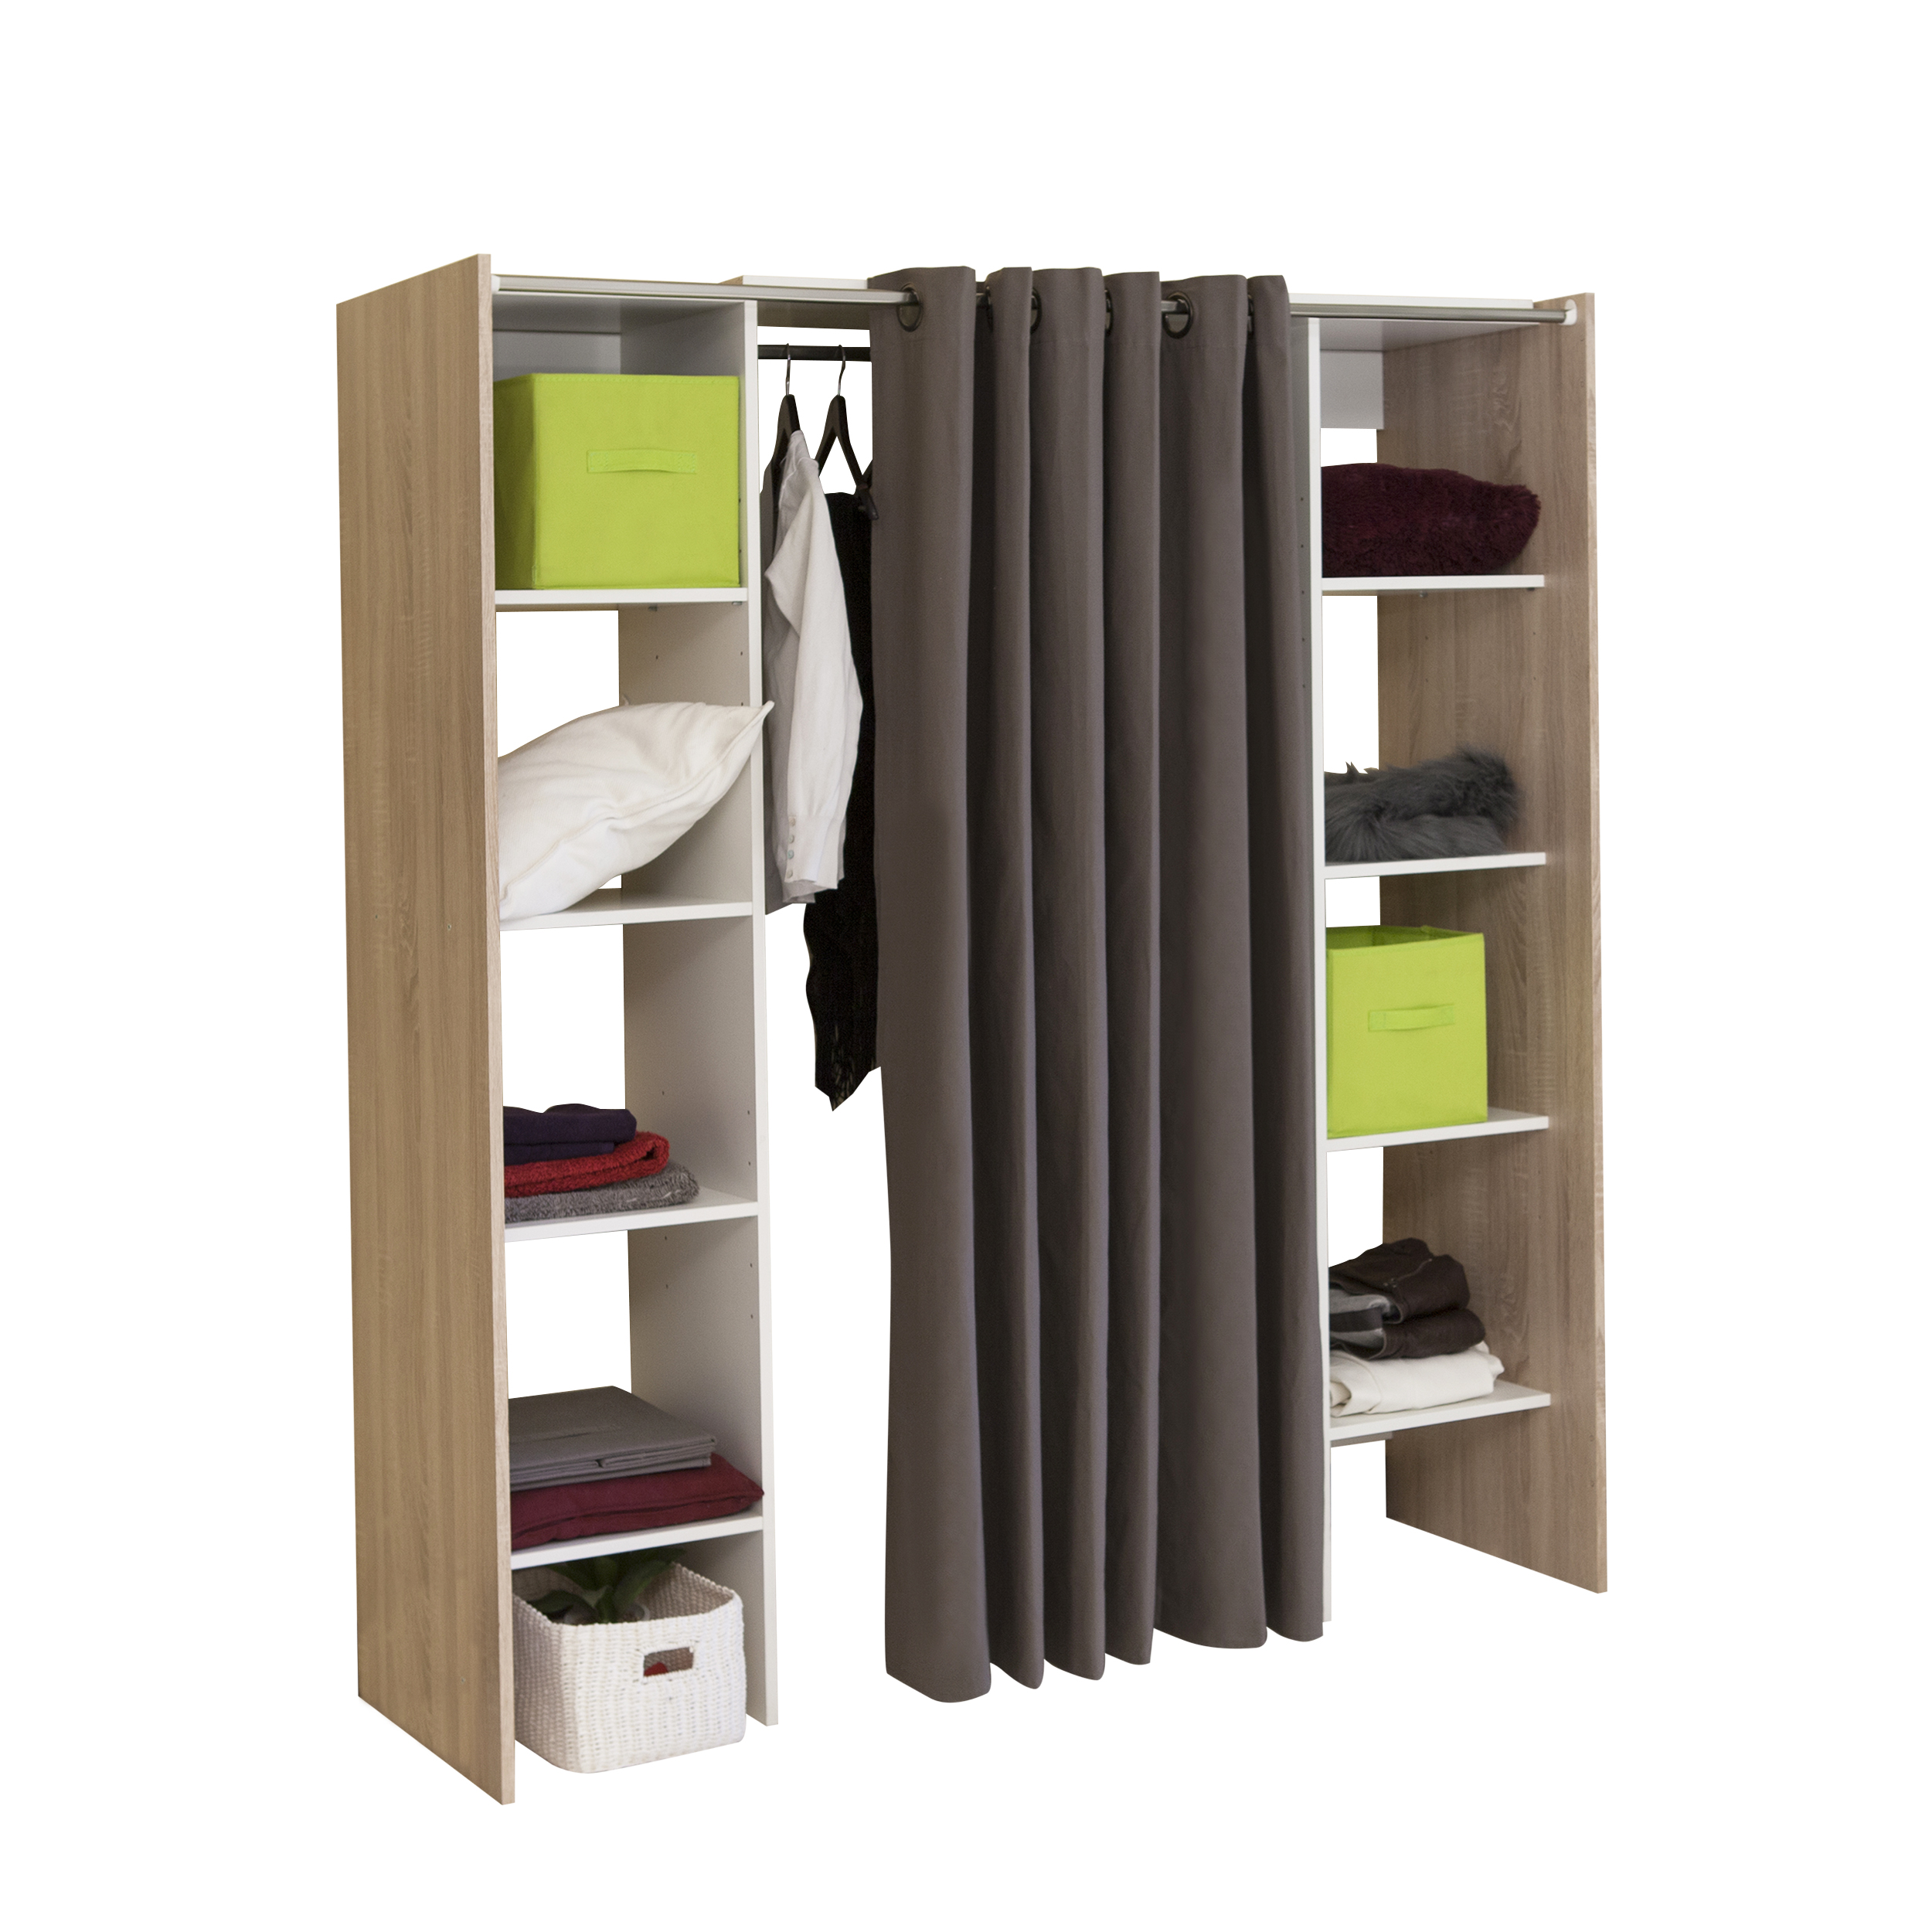 sejour meubles d appoint dressing extensible avec 2 colonnes gamme bardolino le magasin d. Black Bedroom Furniture Sets. Home Design Ideas